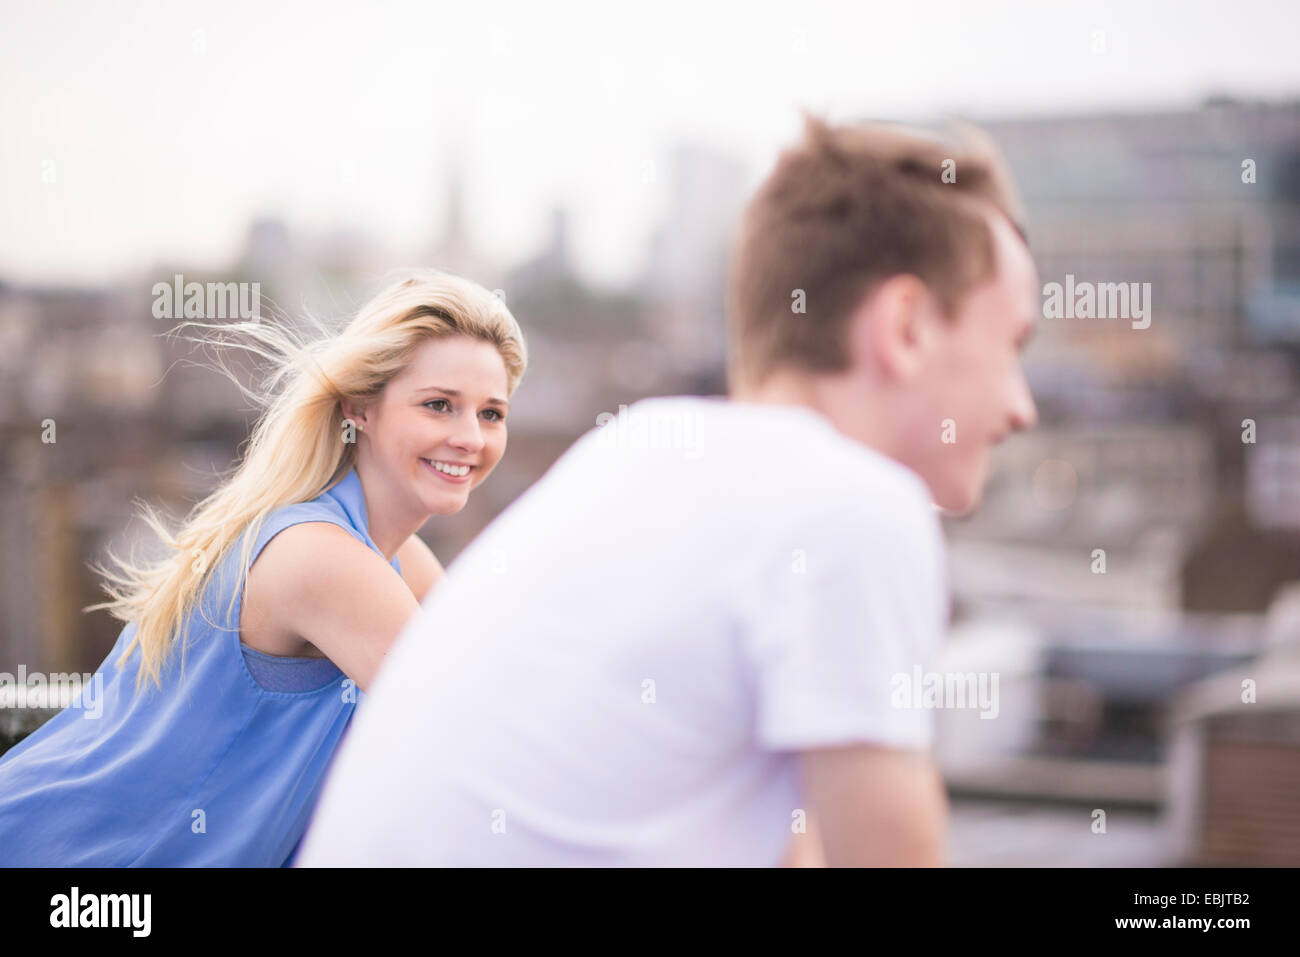 Couple, focus on young woman - Stock Image